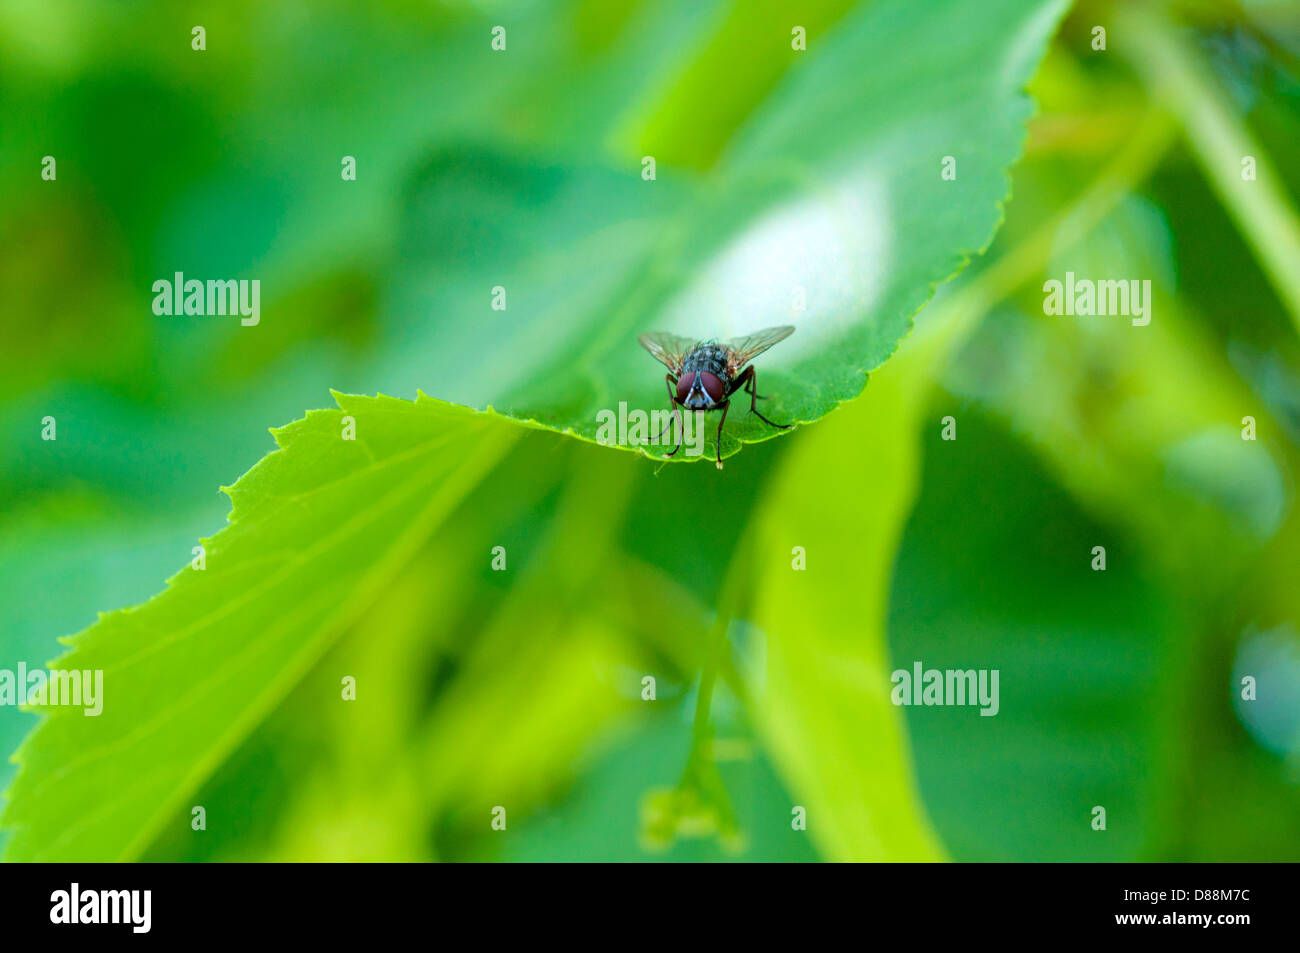 Small midge on the green leaf. Selective focus on the bug - Stock Image